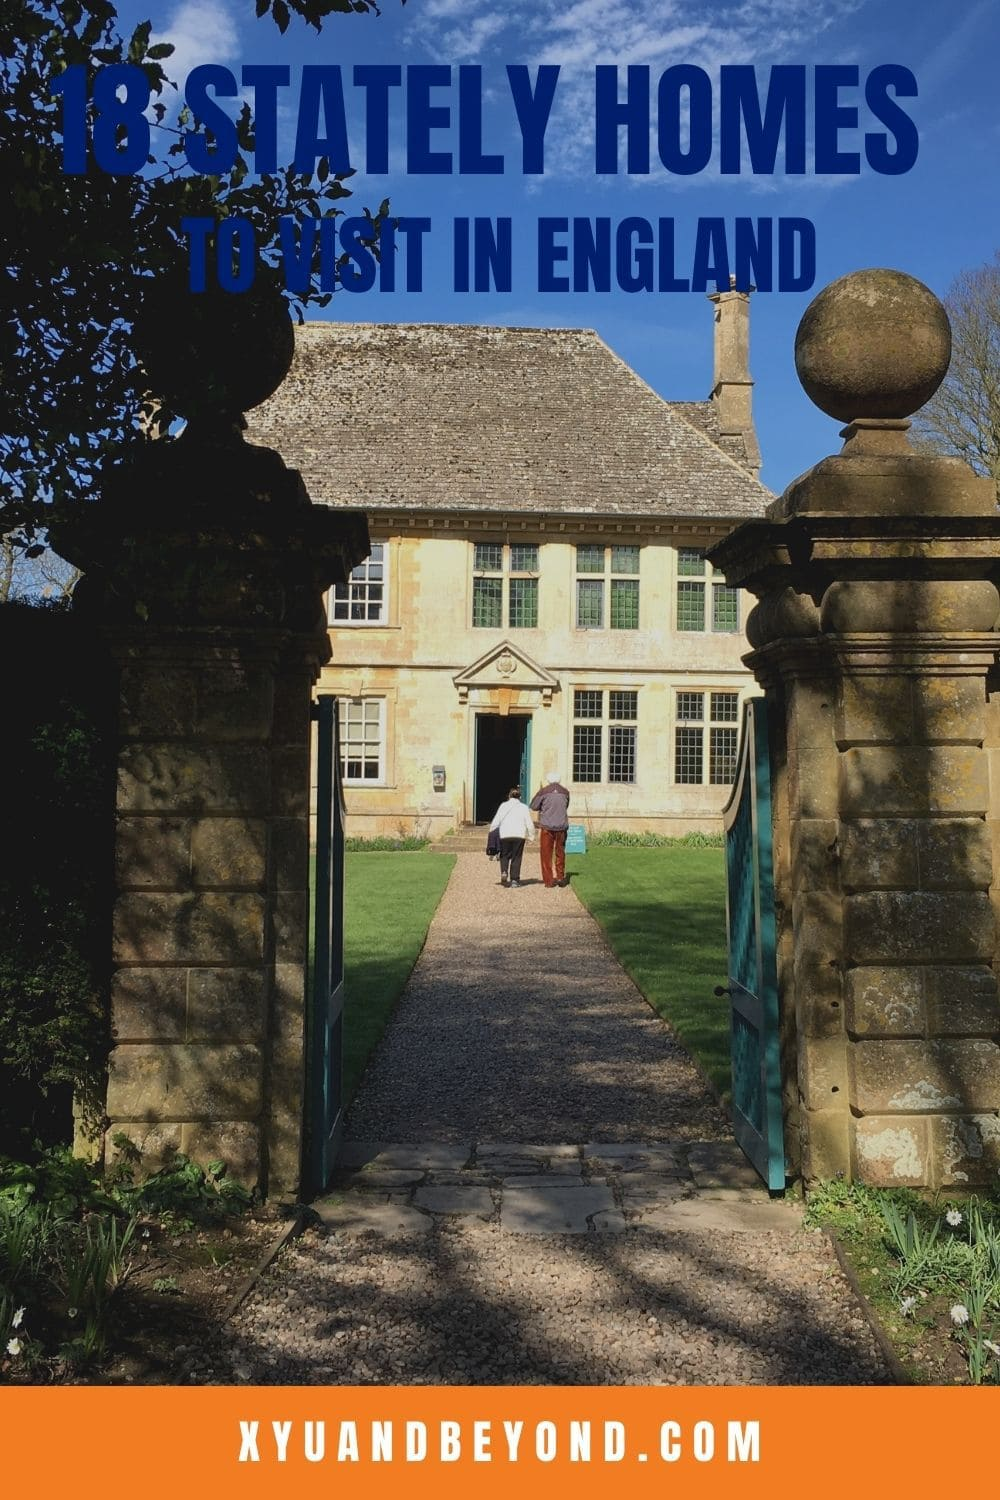 Manor Houses in England